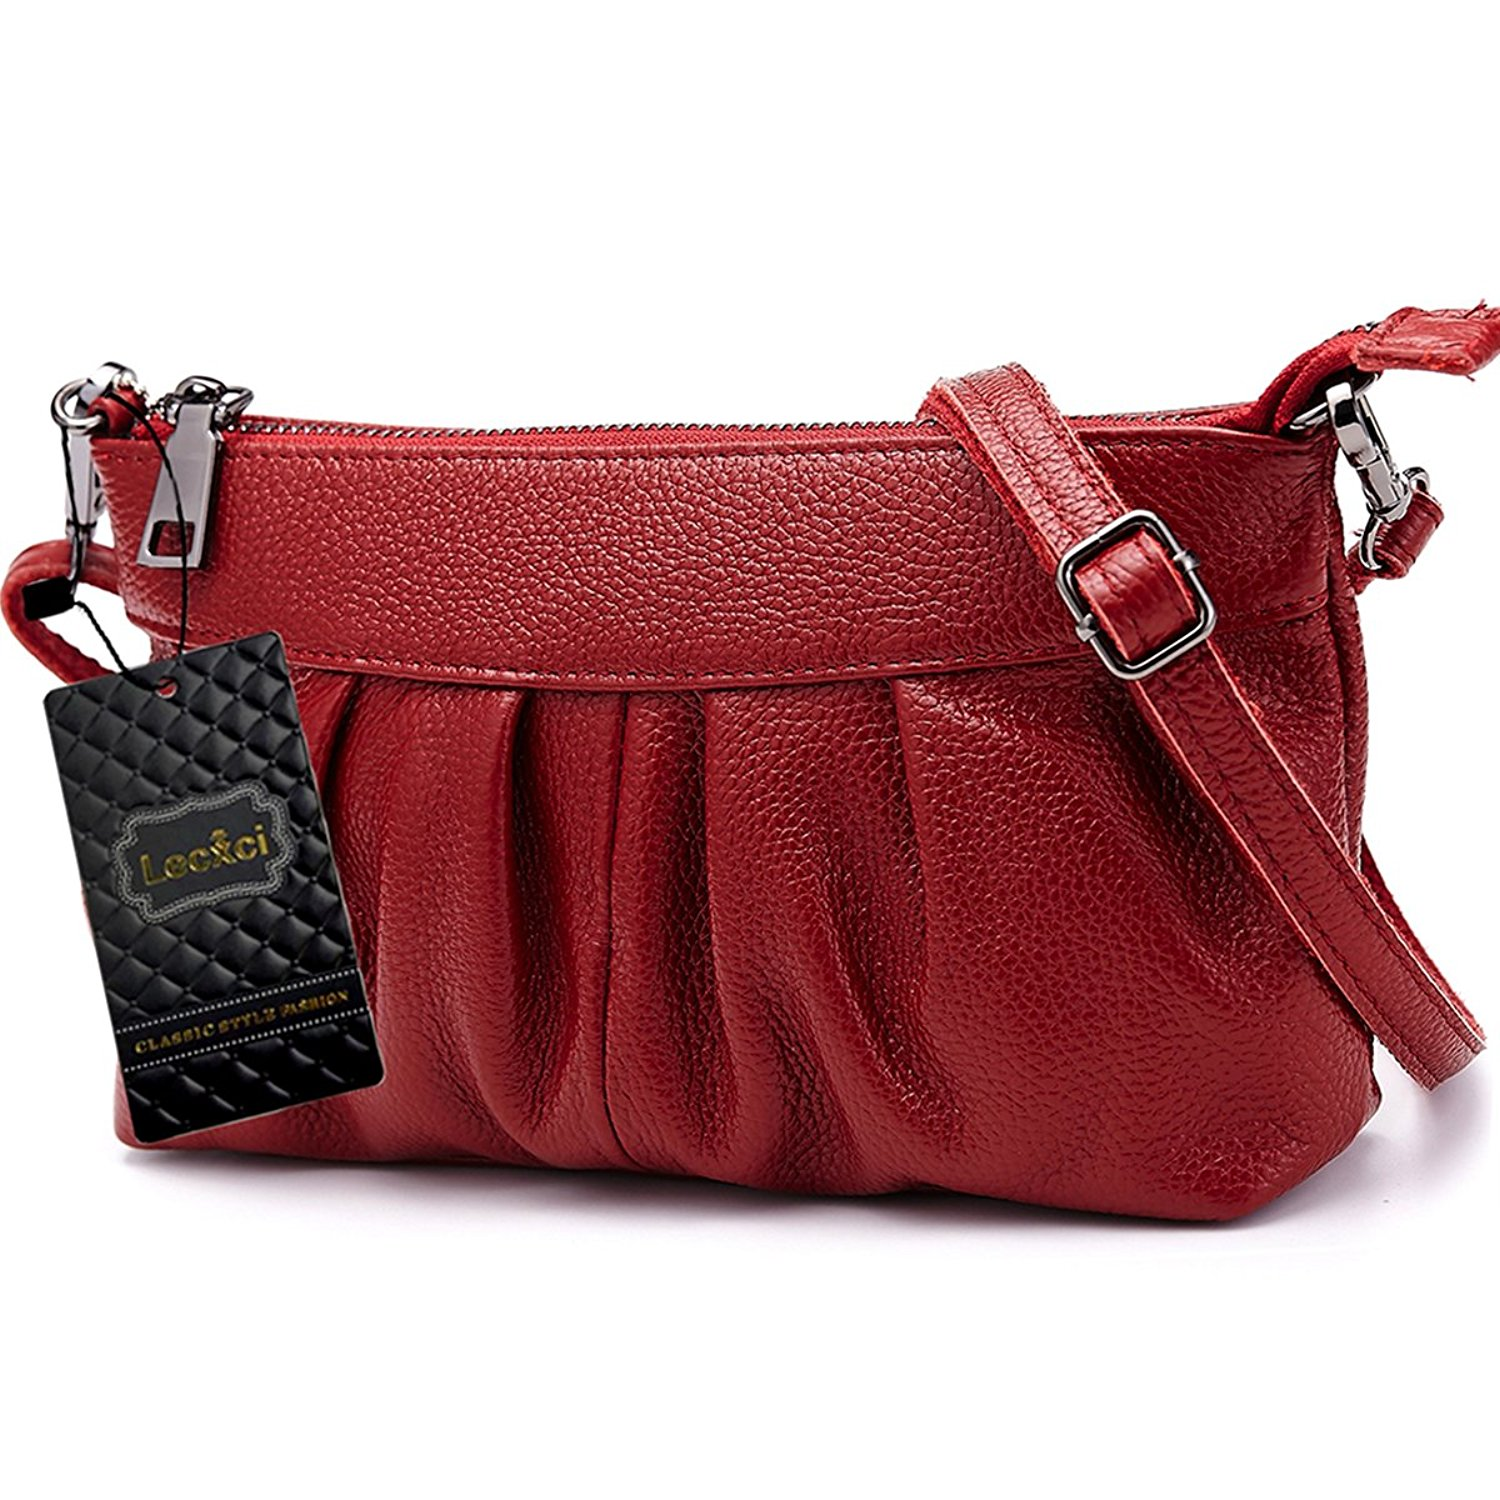 828b767f1f10 Buy Lecxci Womens Small Real Leather Crossbody Cell Phone Bags ...